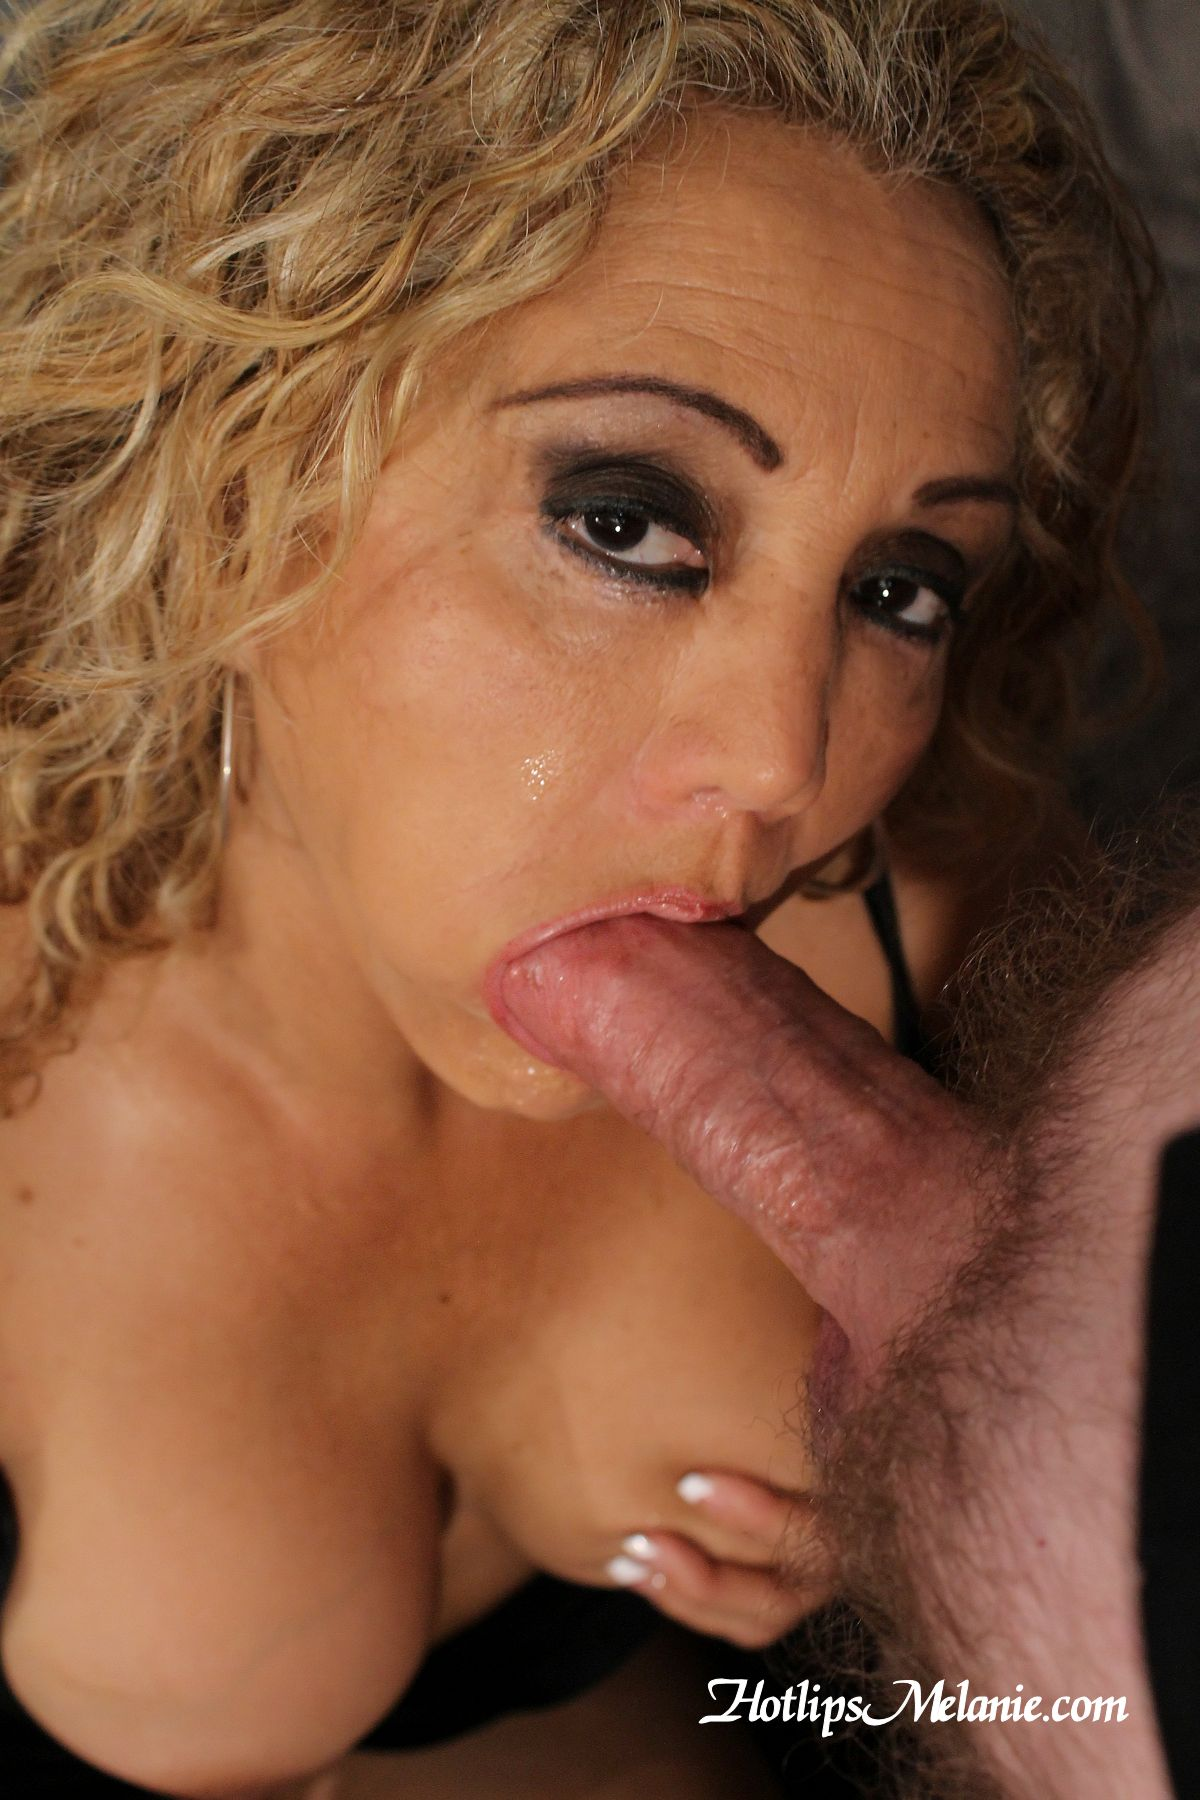 blow my load in milfs mouth